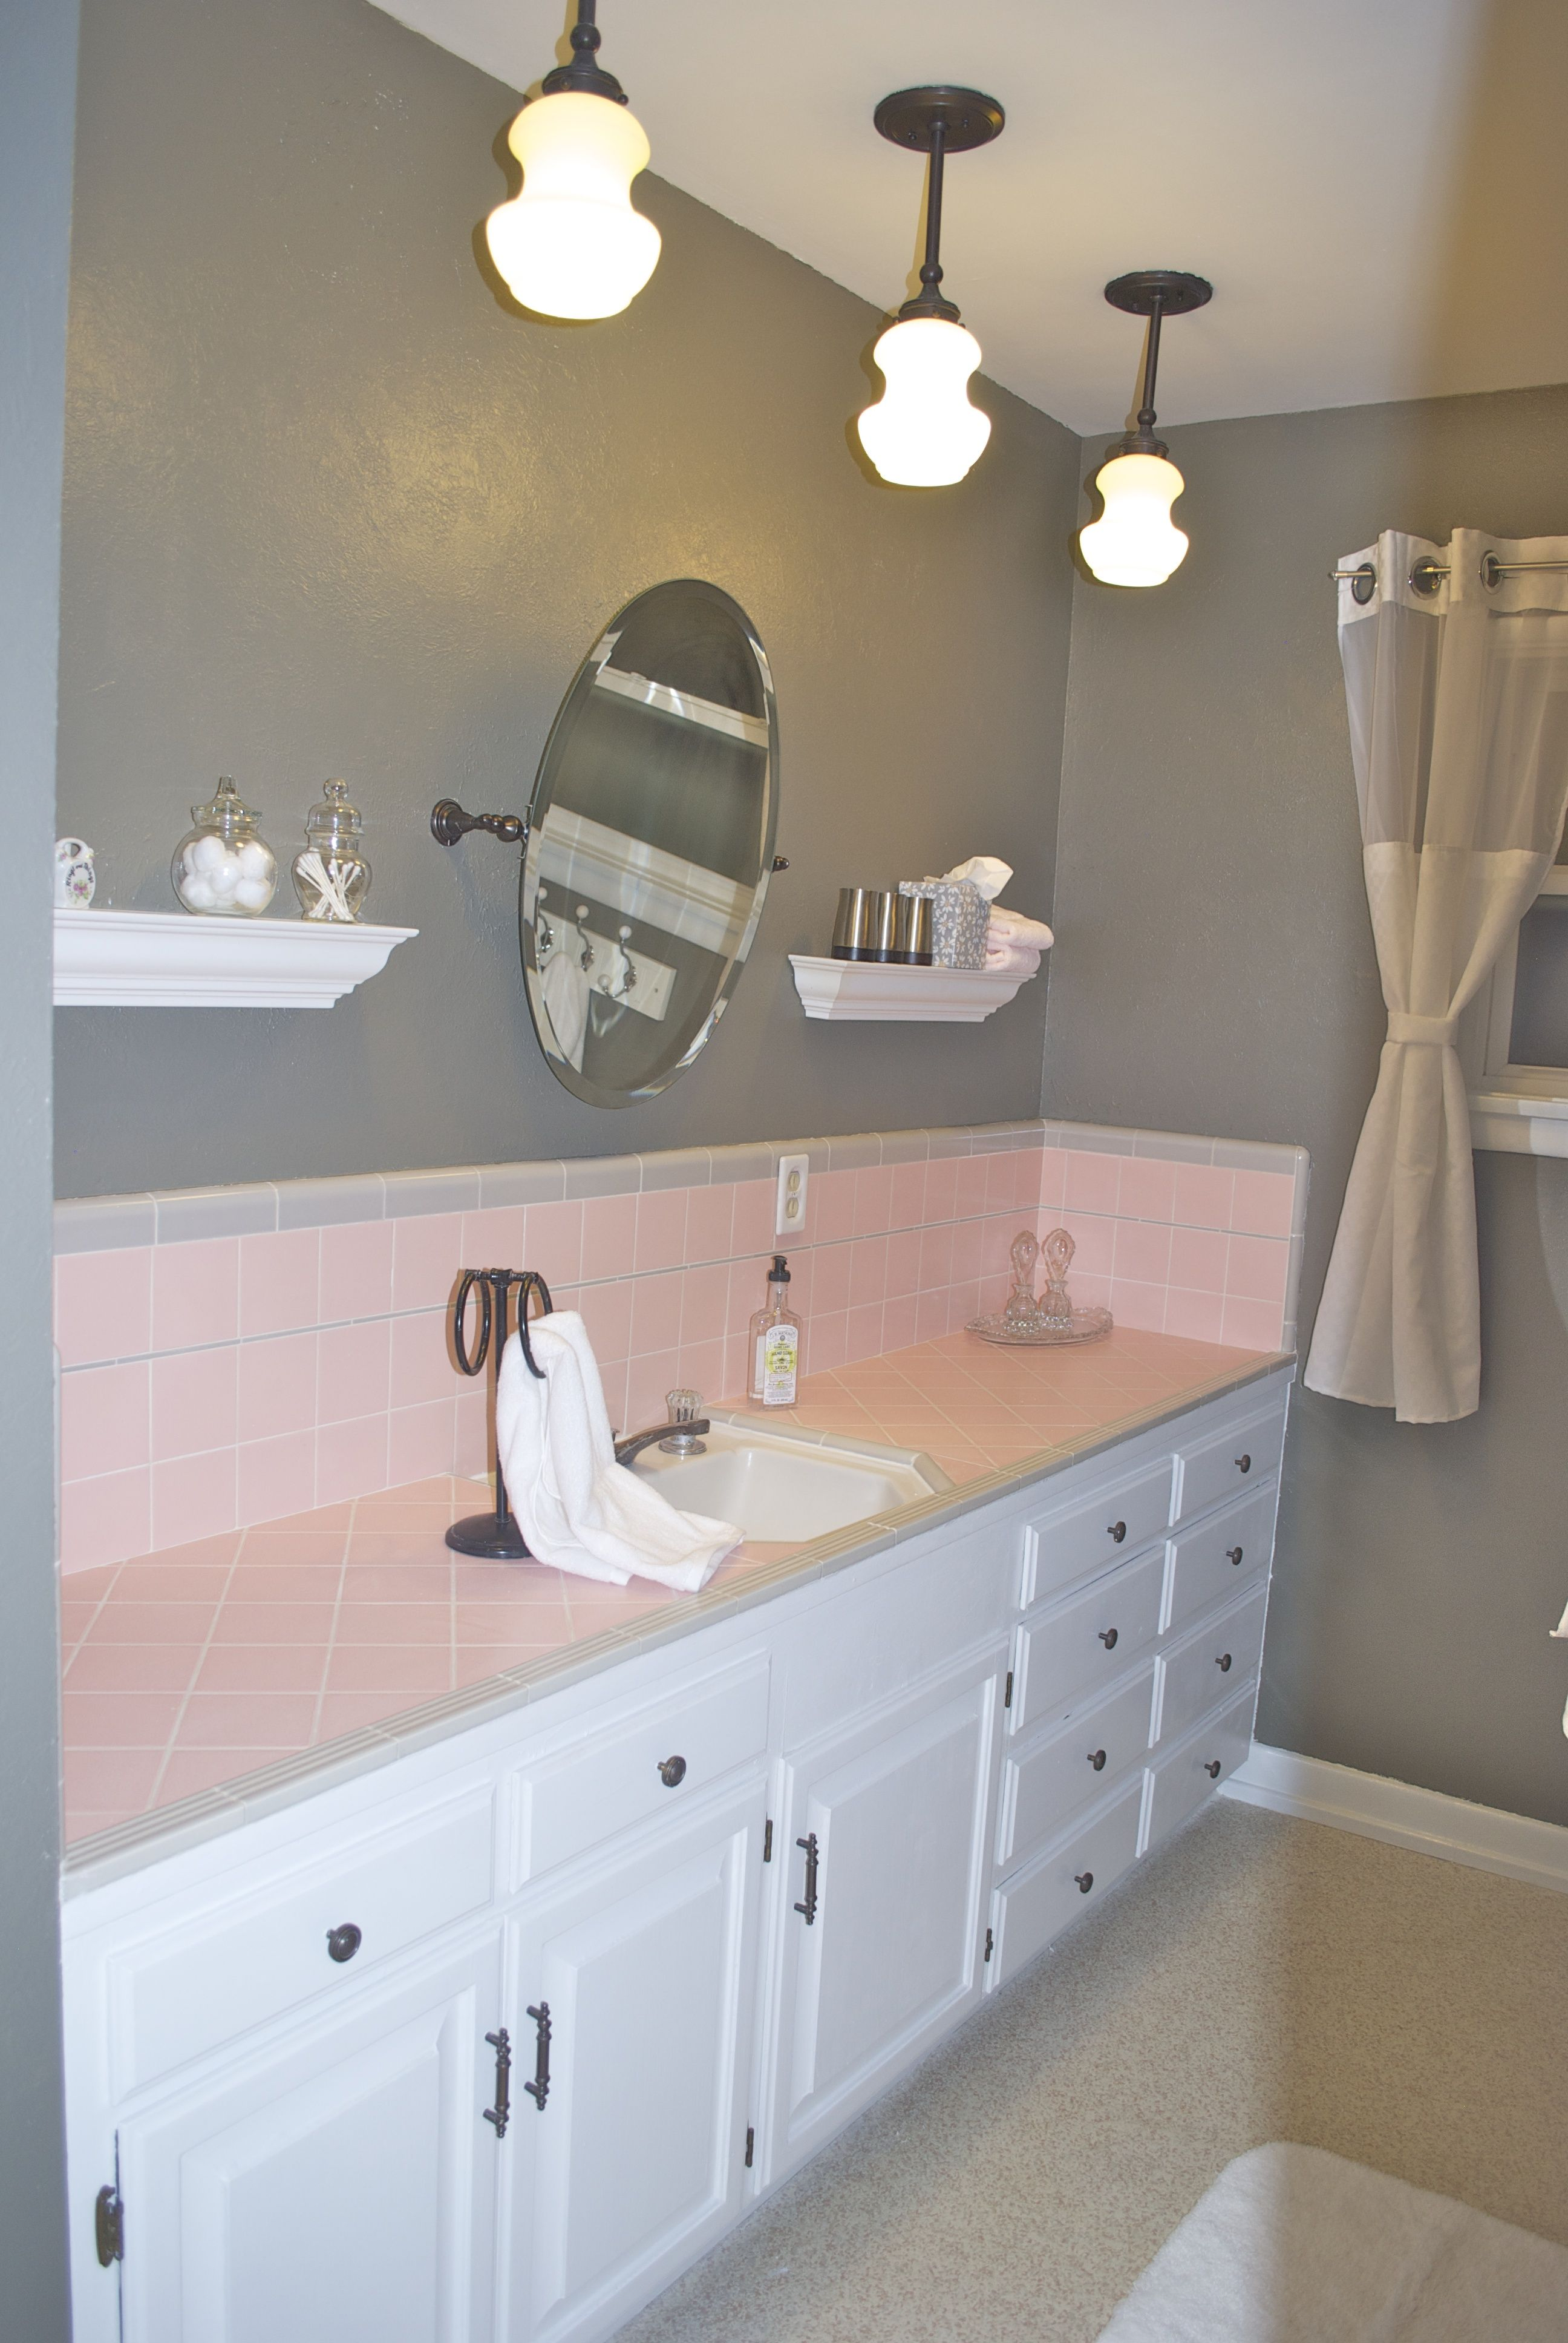 Pink Bathroom Tiles What Wall Color: Save Update Help Our 50s Pink and ...